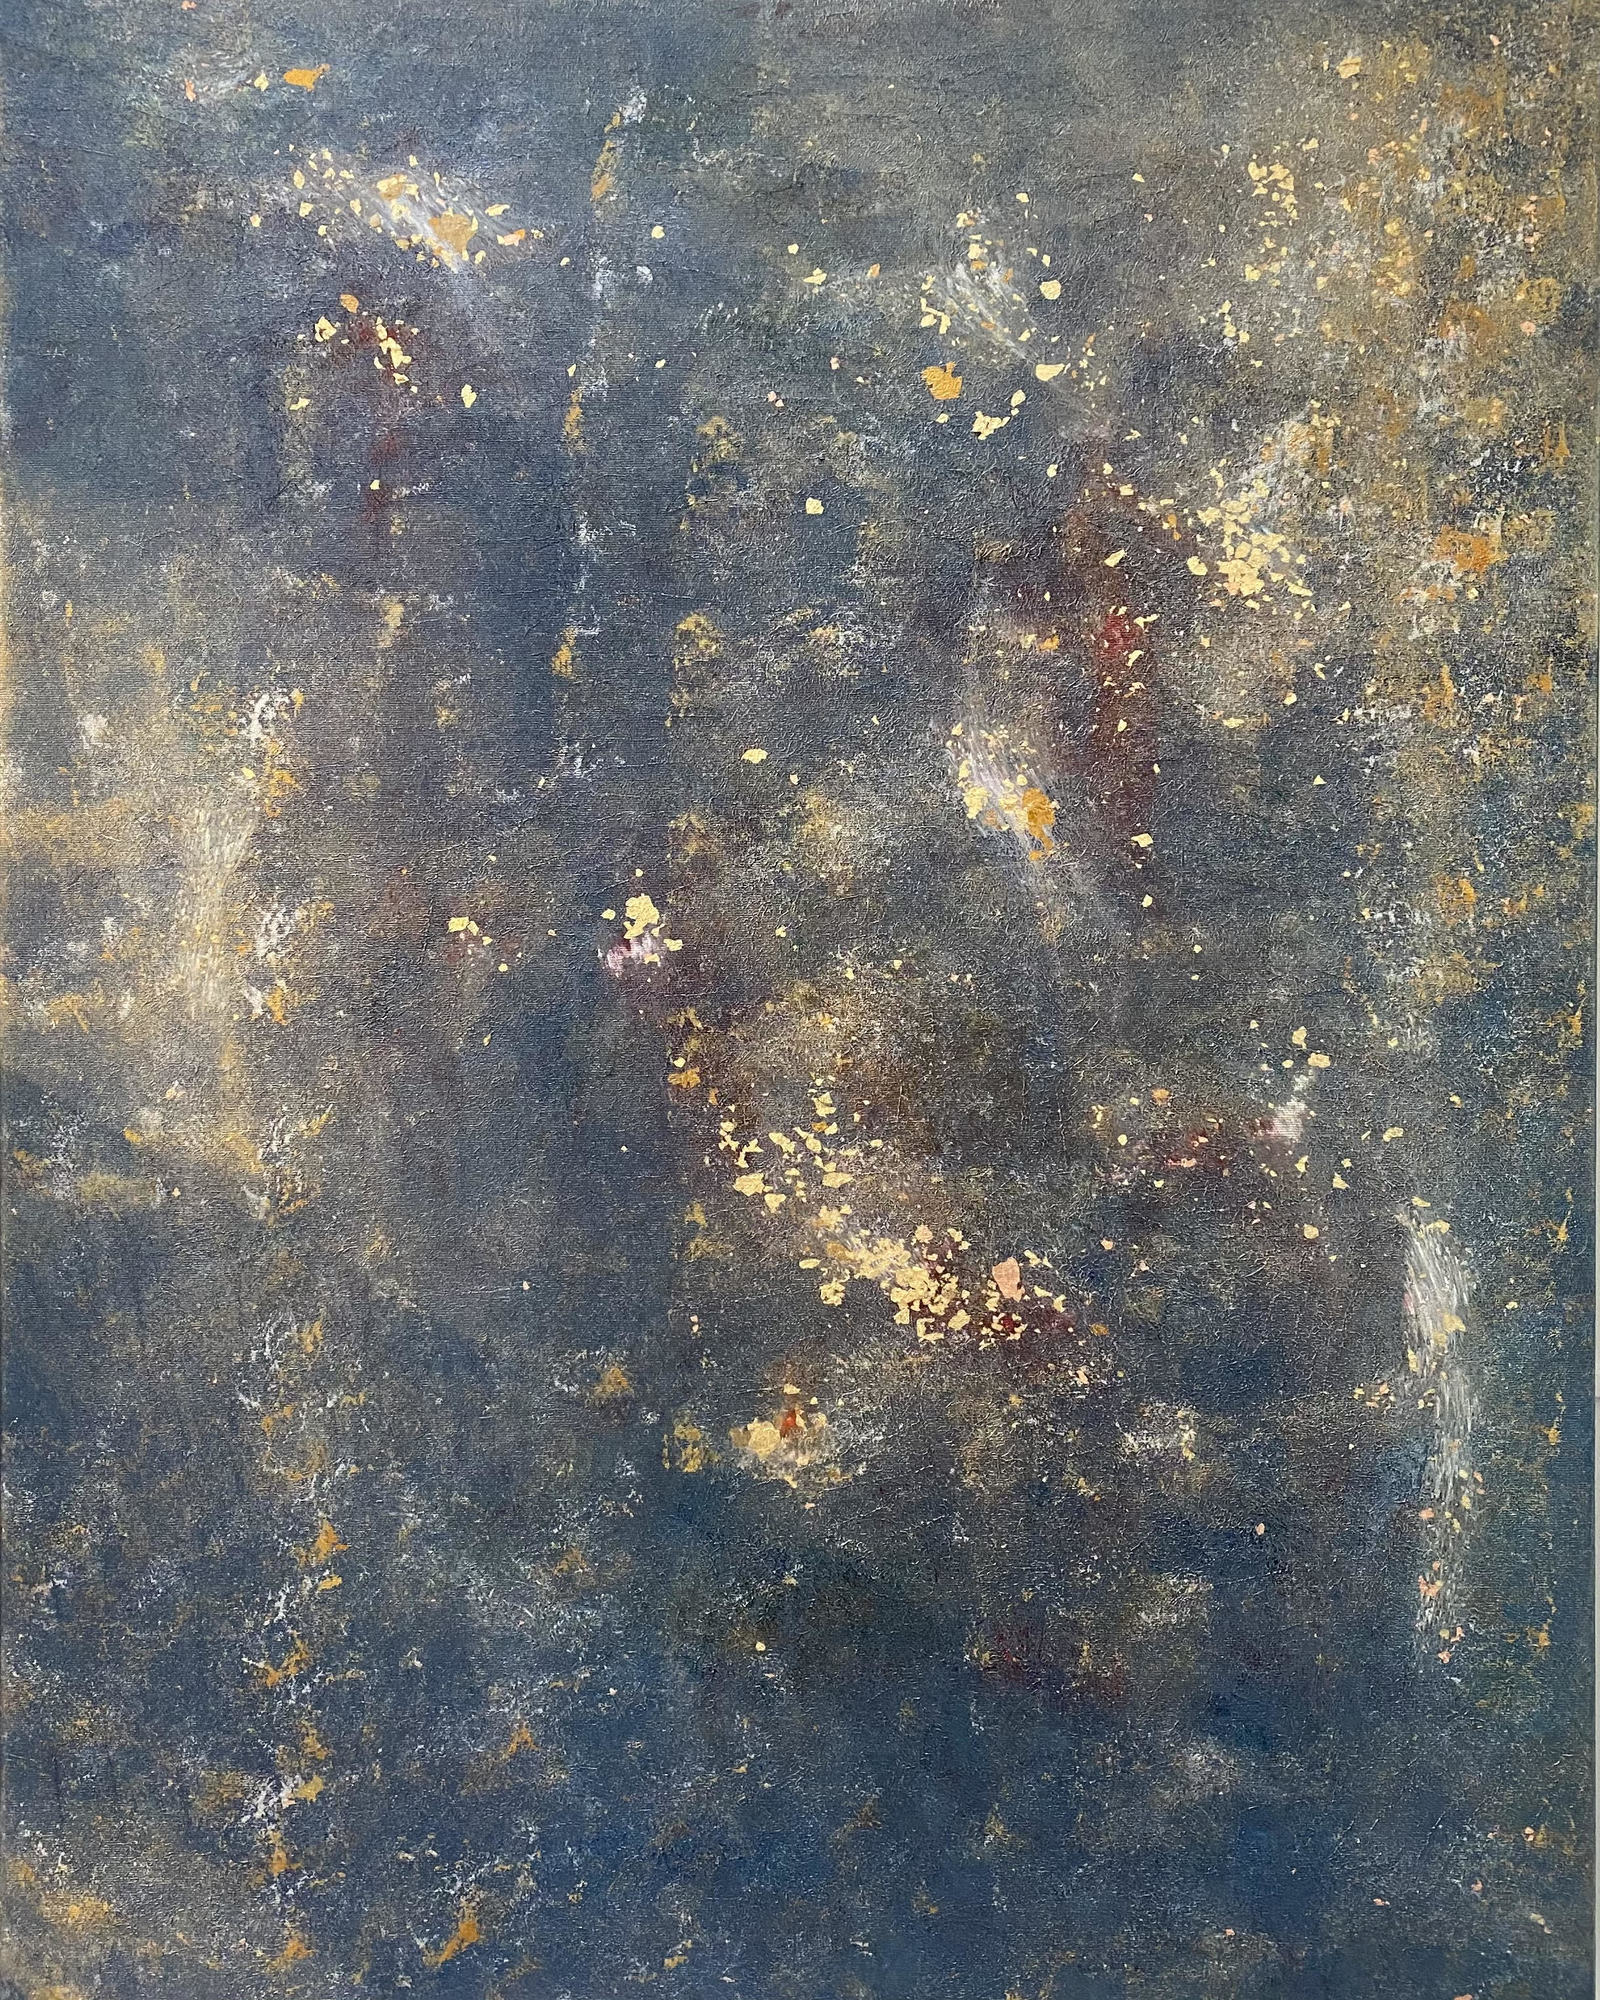 Space, 80x100cm, oil, gold leaves on canvas